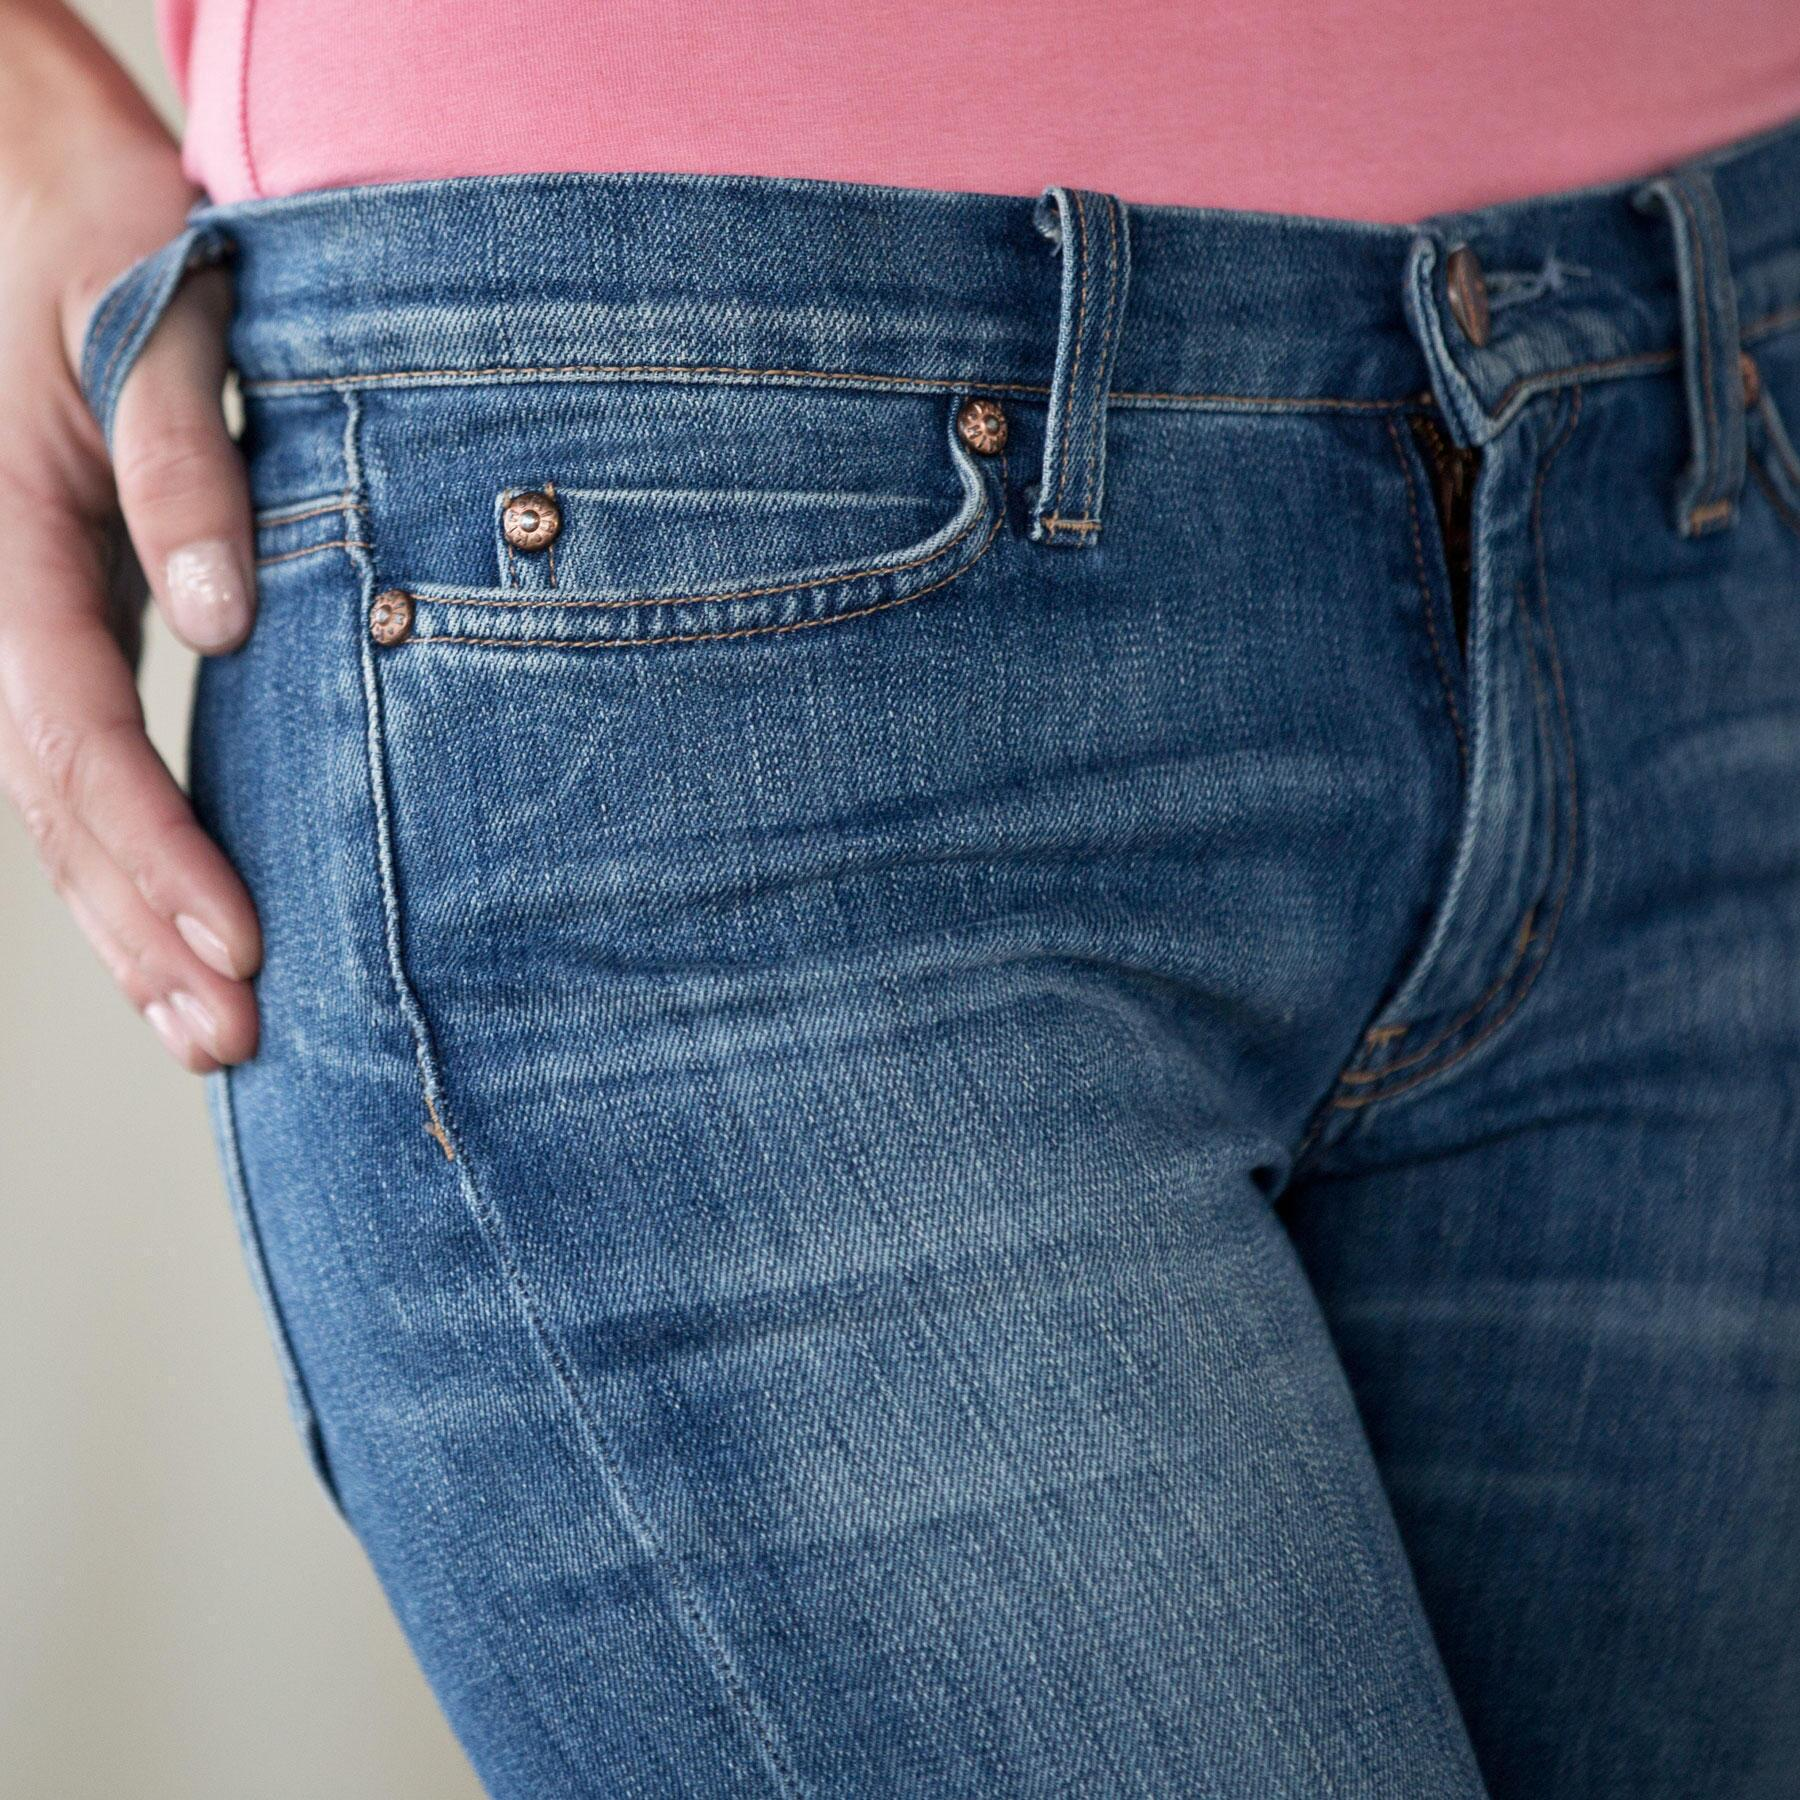 MIH LONDON JEANS: View 4